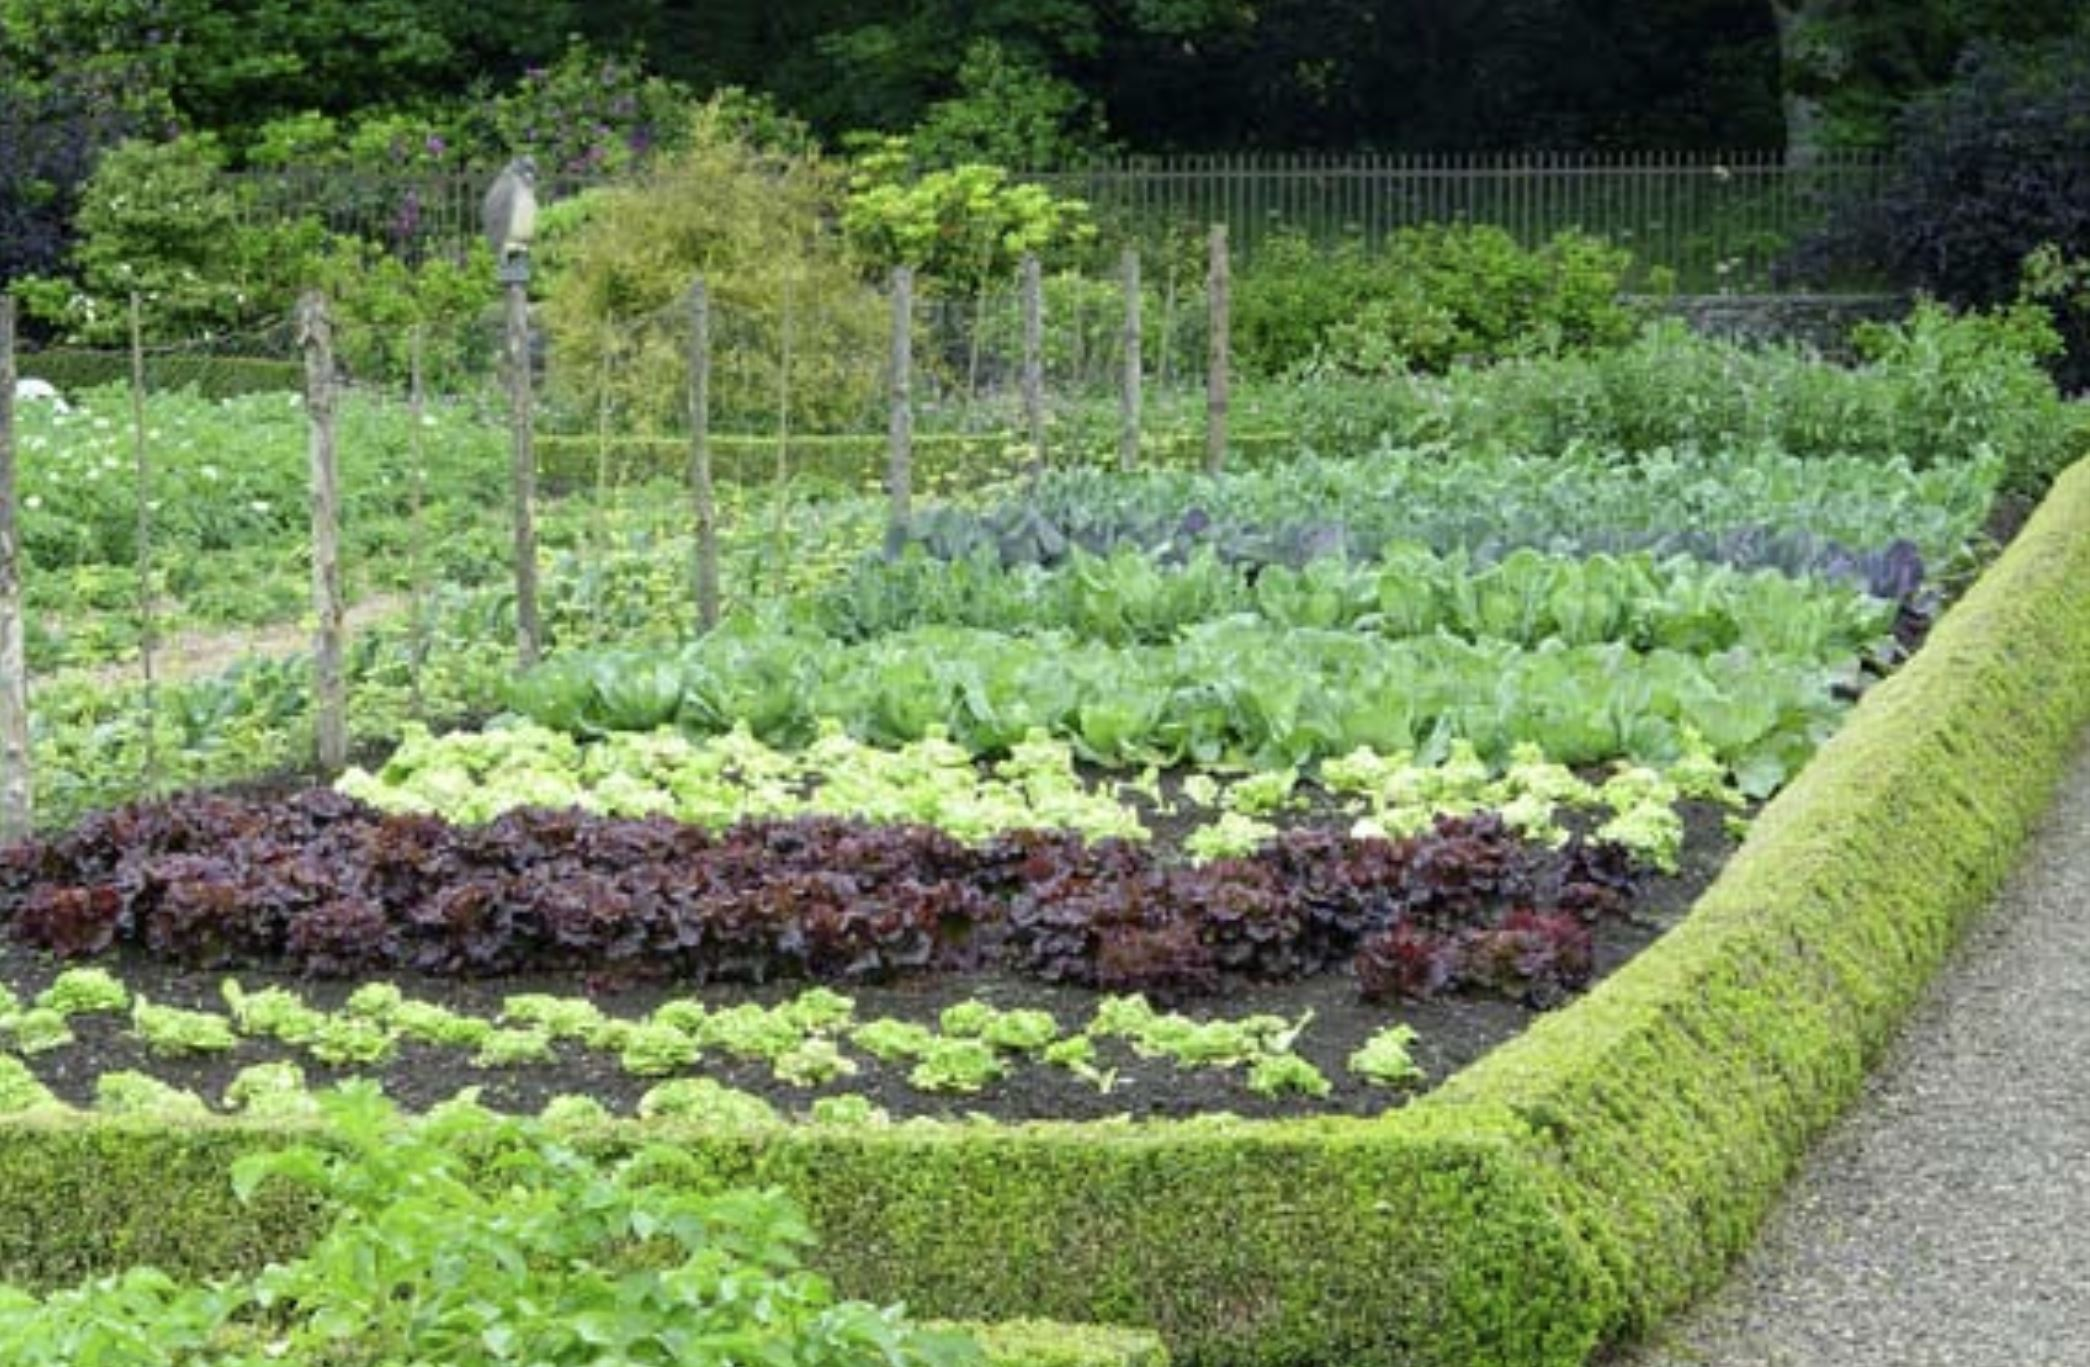 How to replant a vegetable garden in the summer for a big fall harvest